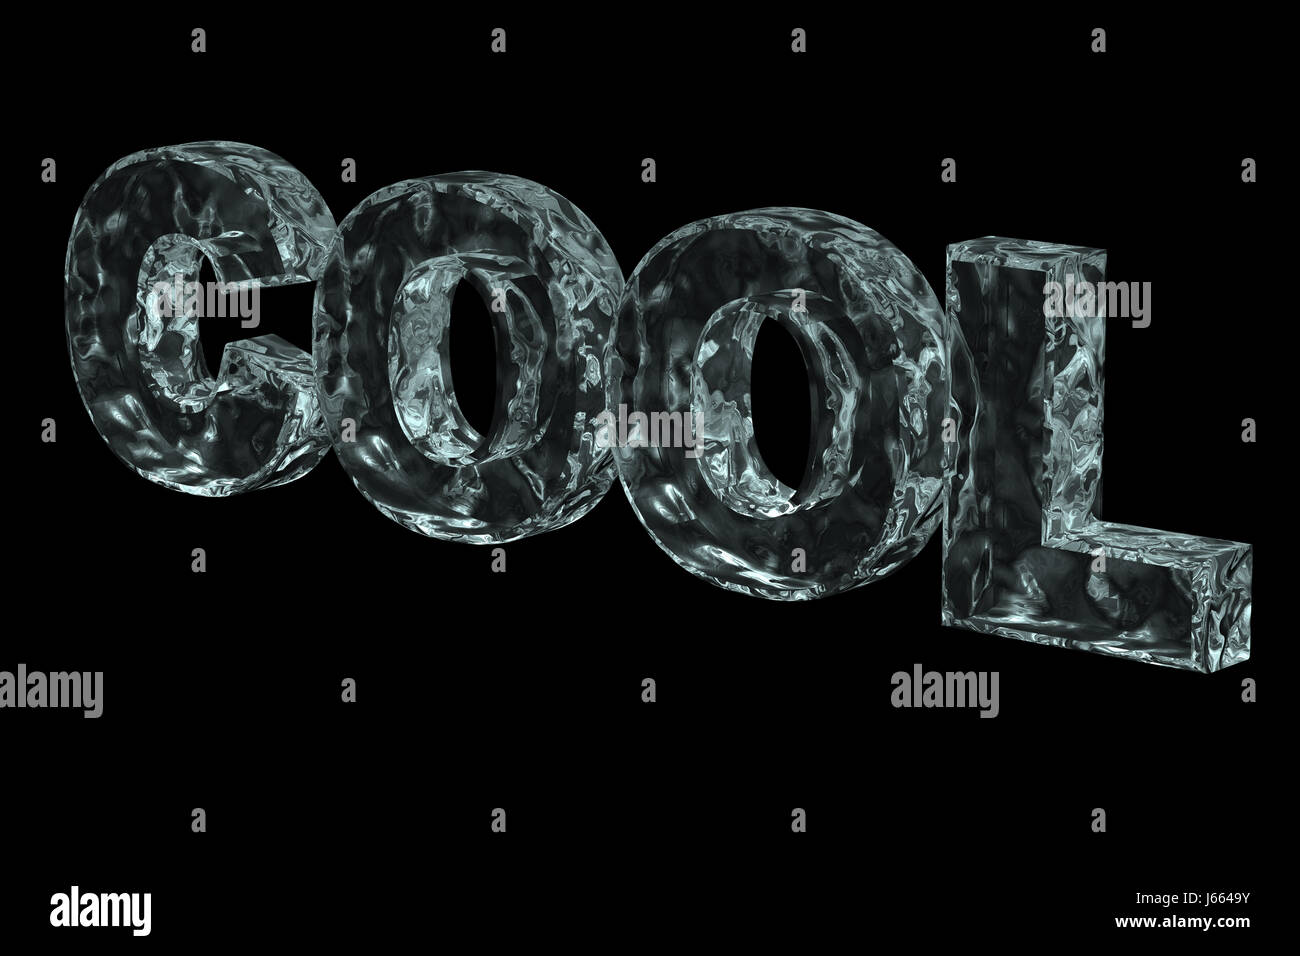 Cold Ice Block Frozen Letters Word Illustration Cool Freeze Icecold Graphic